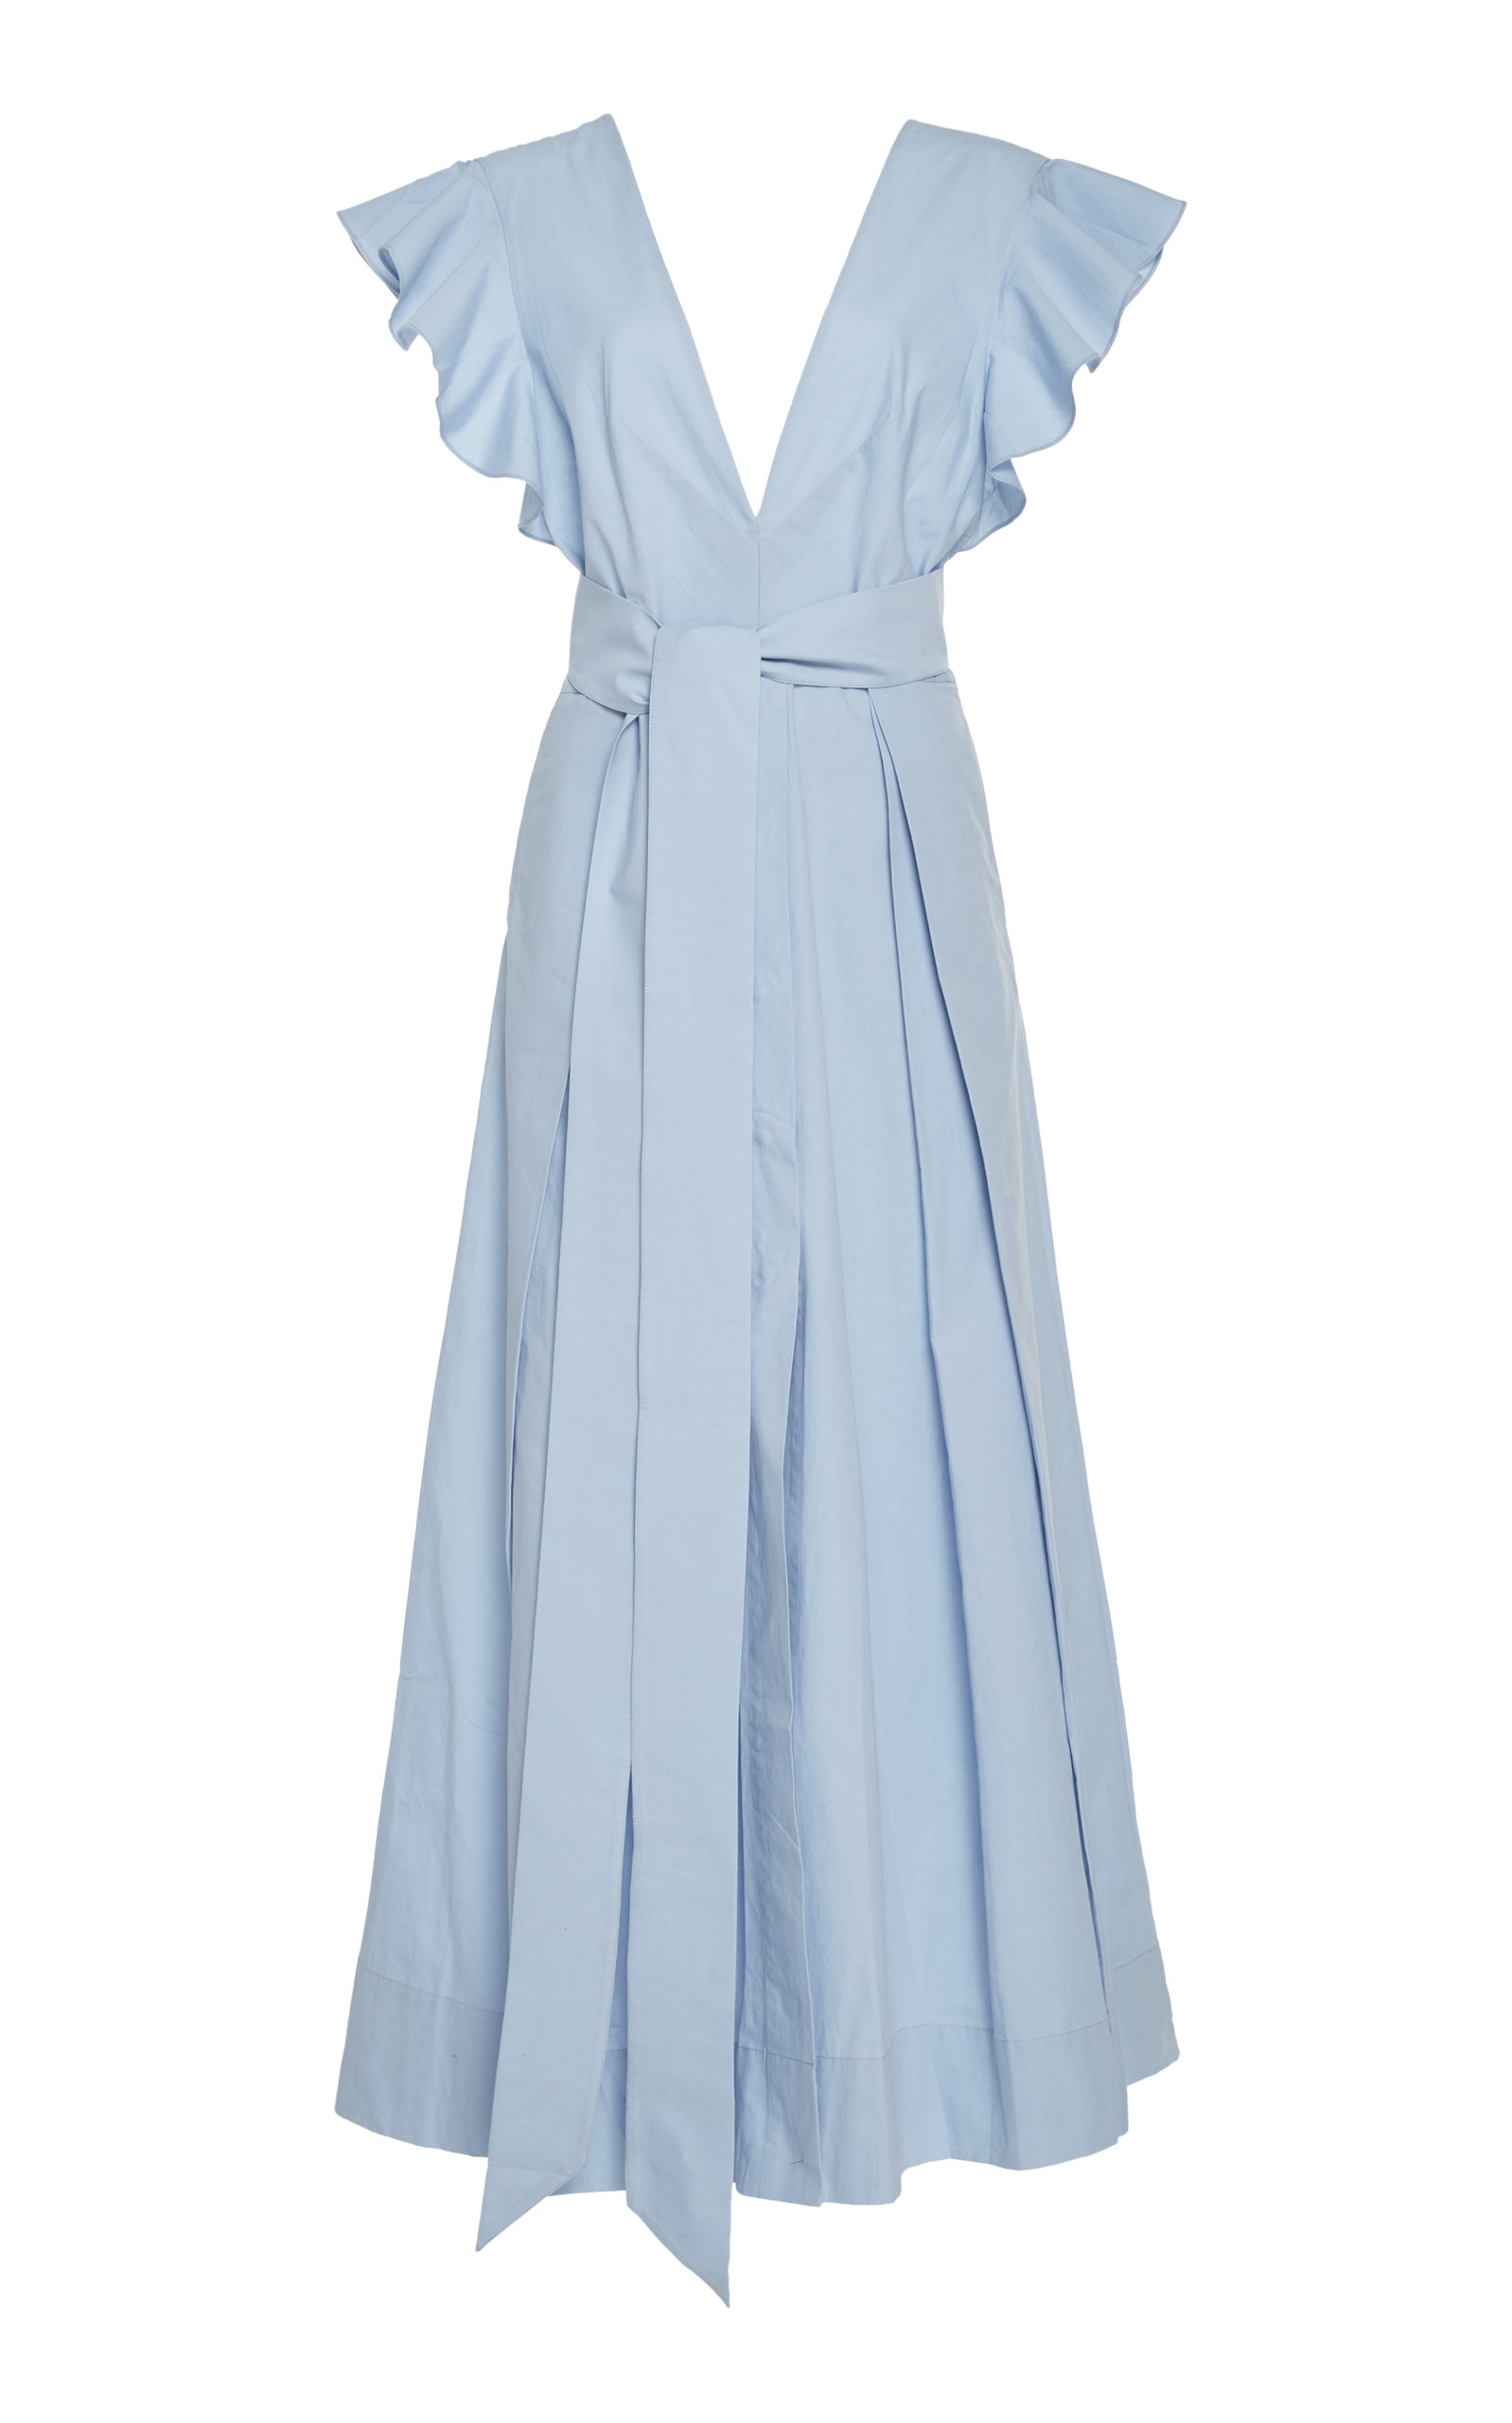 large_kalita-blue-new-poet-by-the-sea-belted-cotton-poplin-maxi-dress.jpg